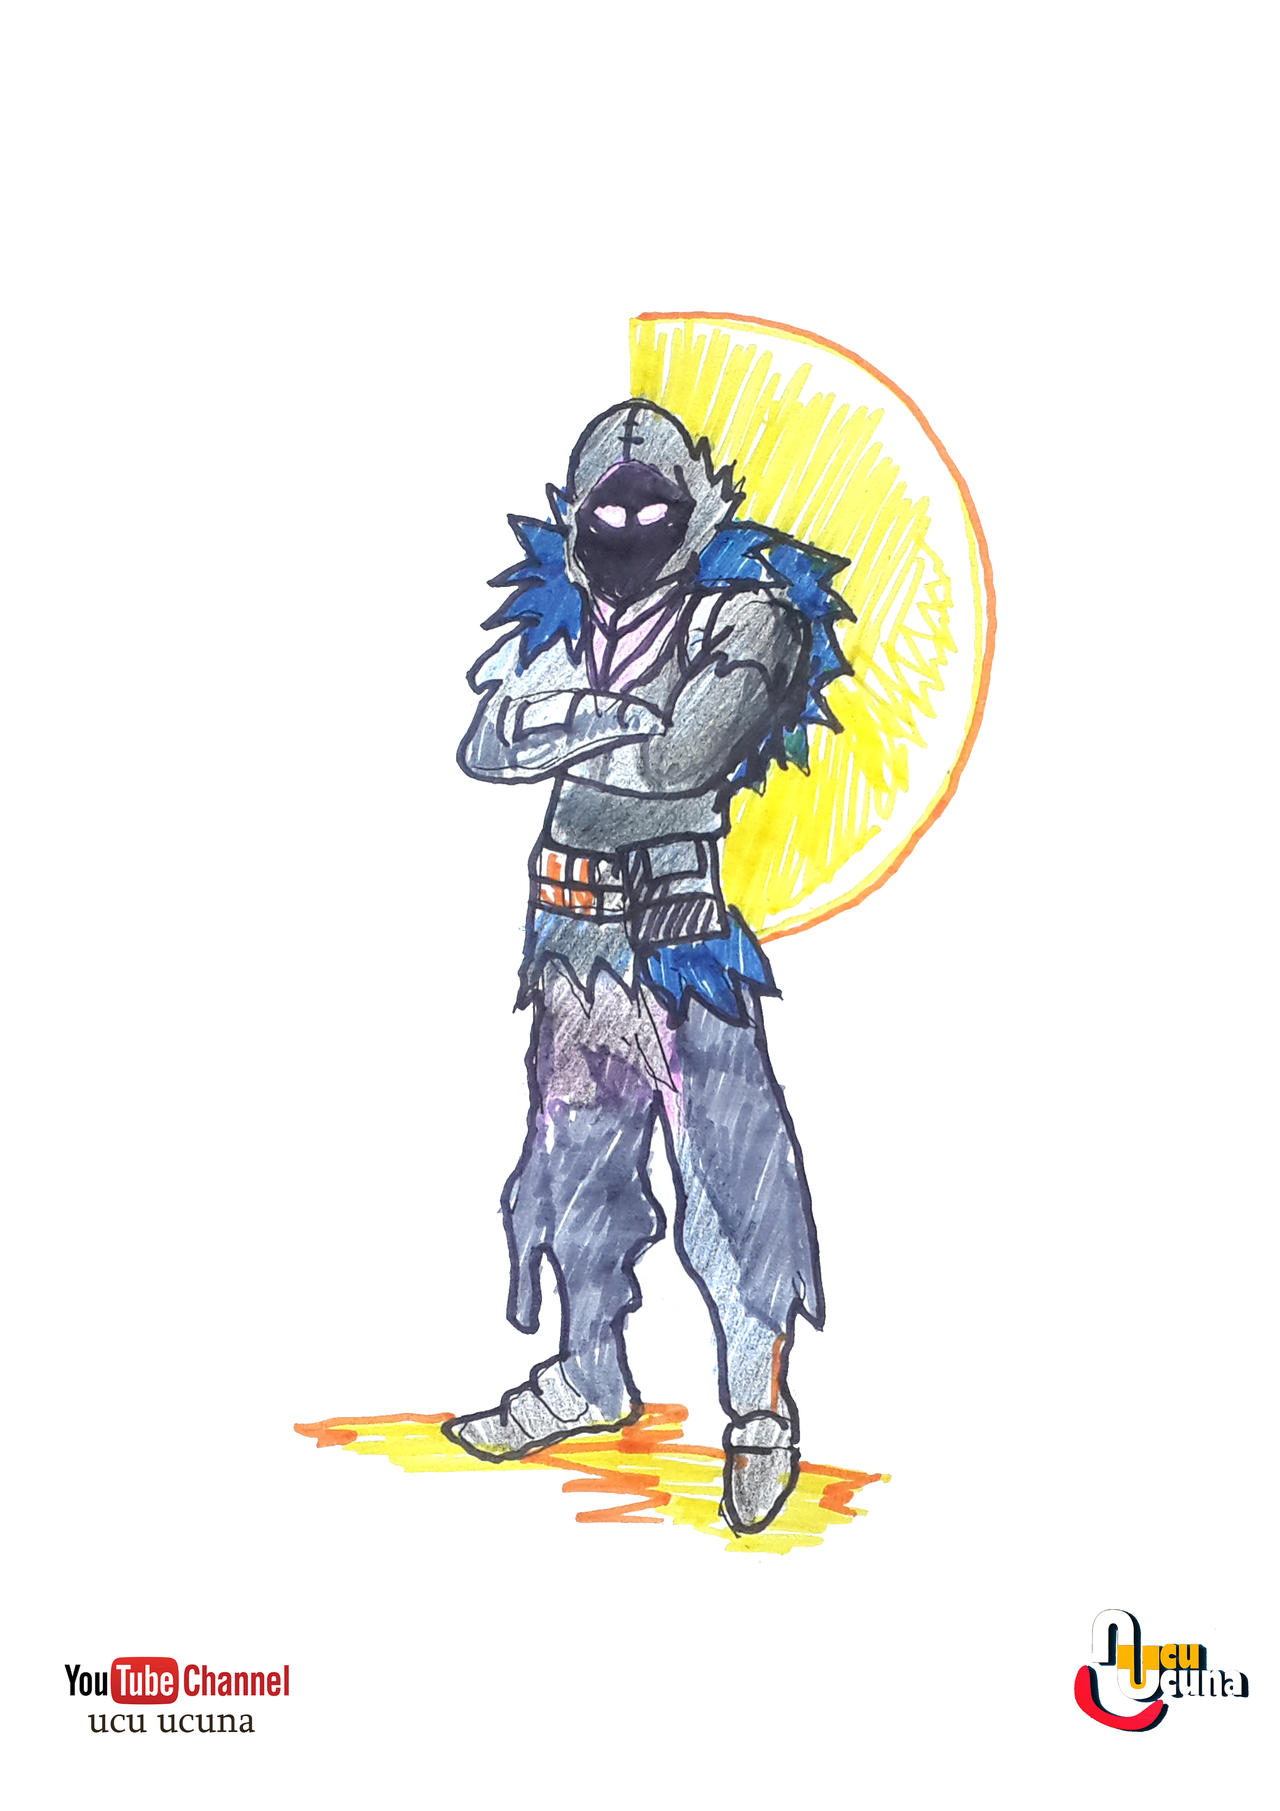 Youtube Raven Fortnite How To Draw Raven From Fortnite Battle Royal By Ahmetbroge On Deviantart